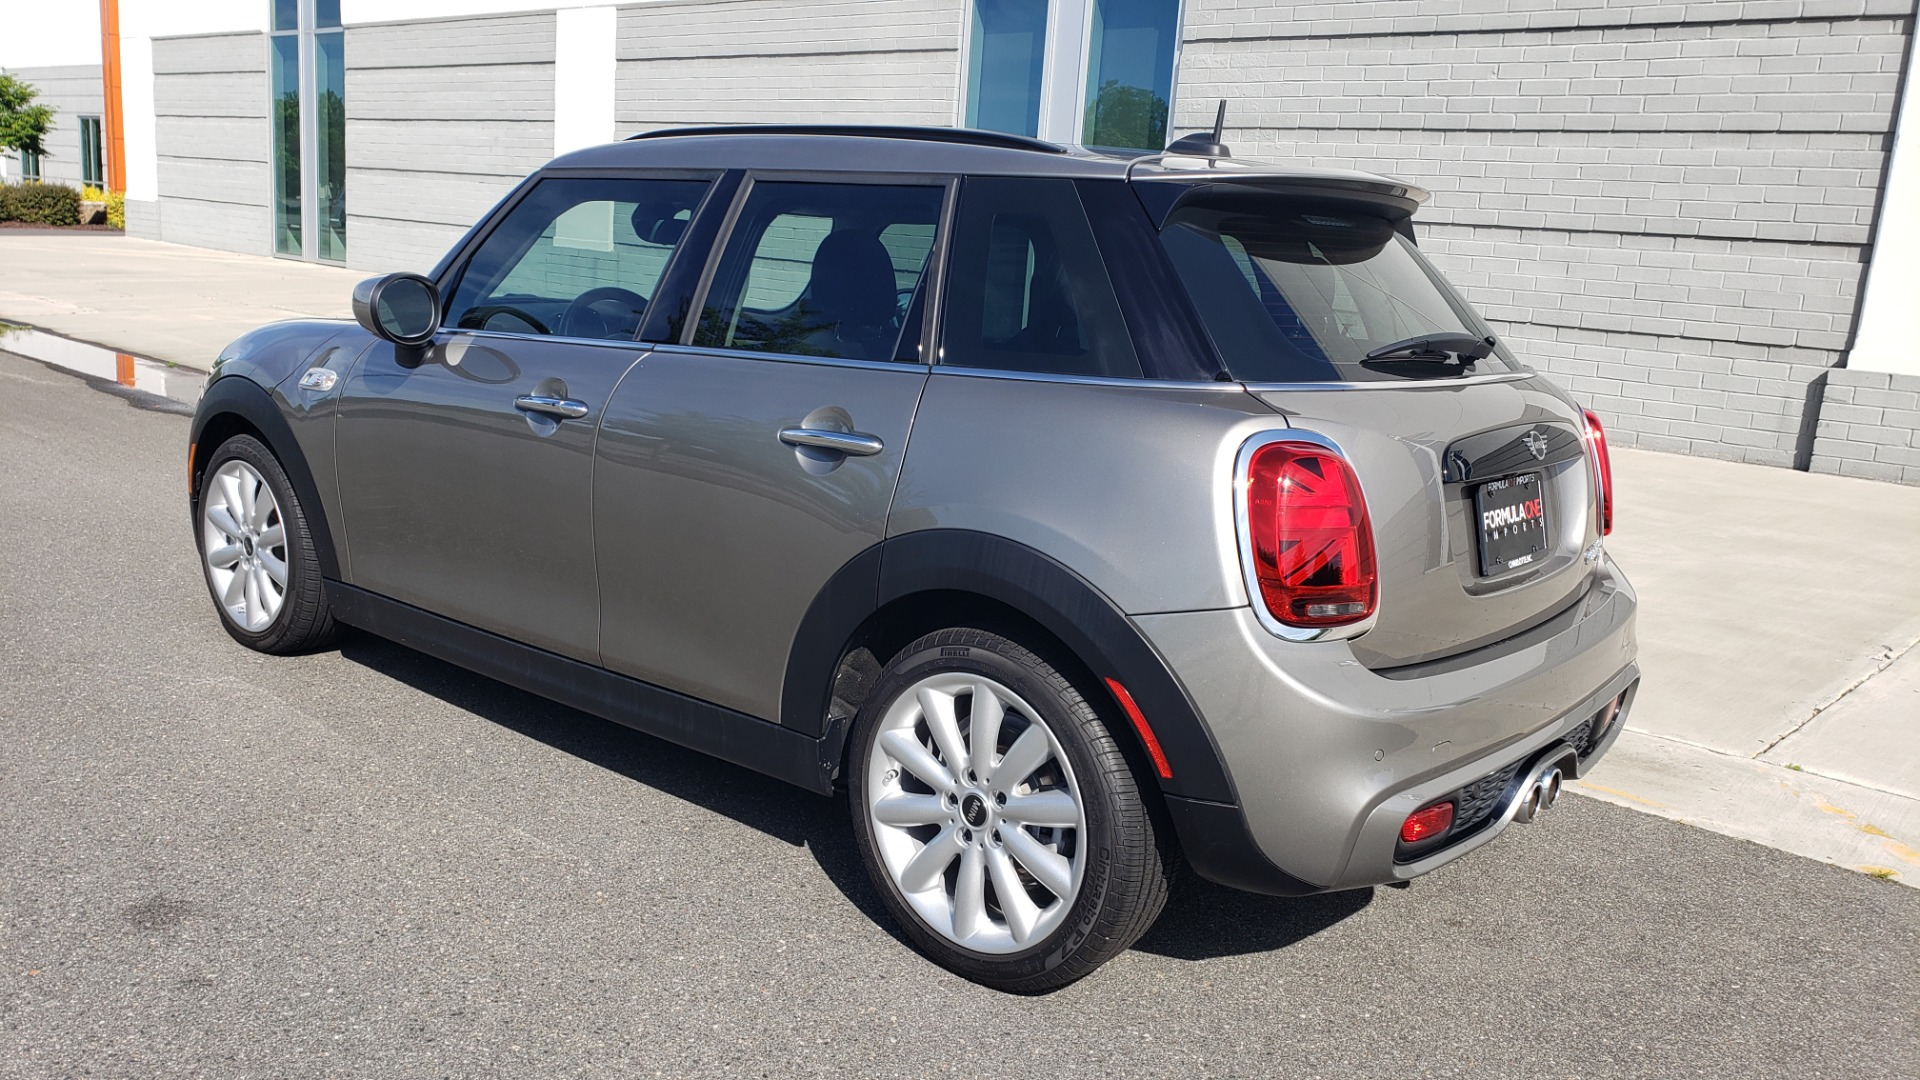 Used 2020 MINI HARDTOP 4 DOOR COOPER S / NAV / SUNROOF / AUTO / H/K SND / REARVIEW for sale $28,495 at Formula Imports in Charlotte NC 28227 5